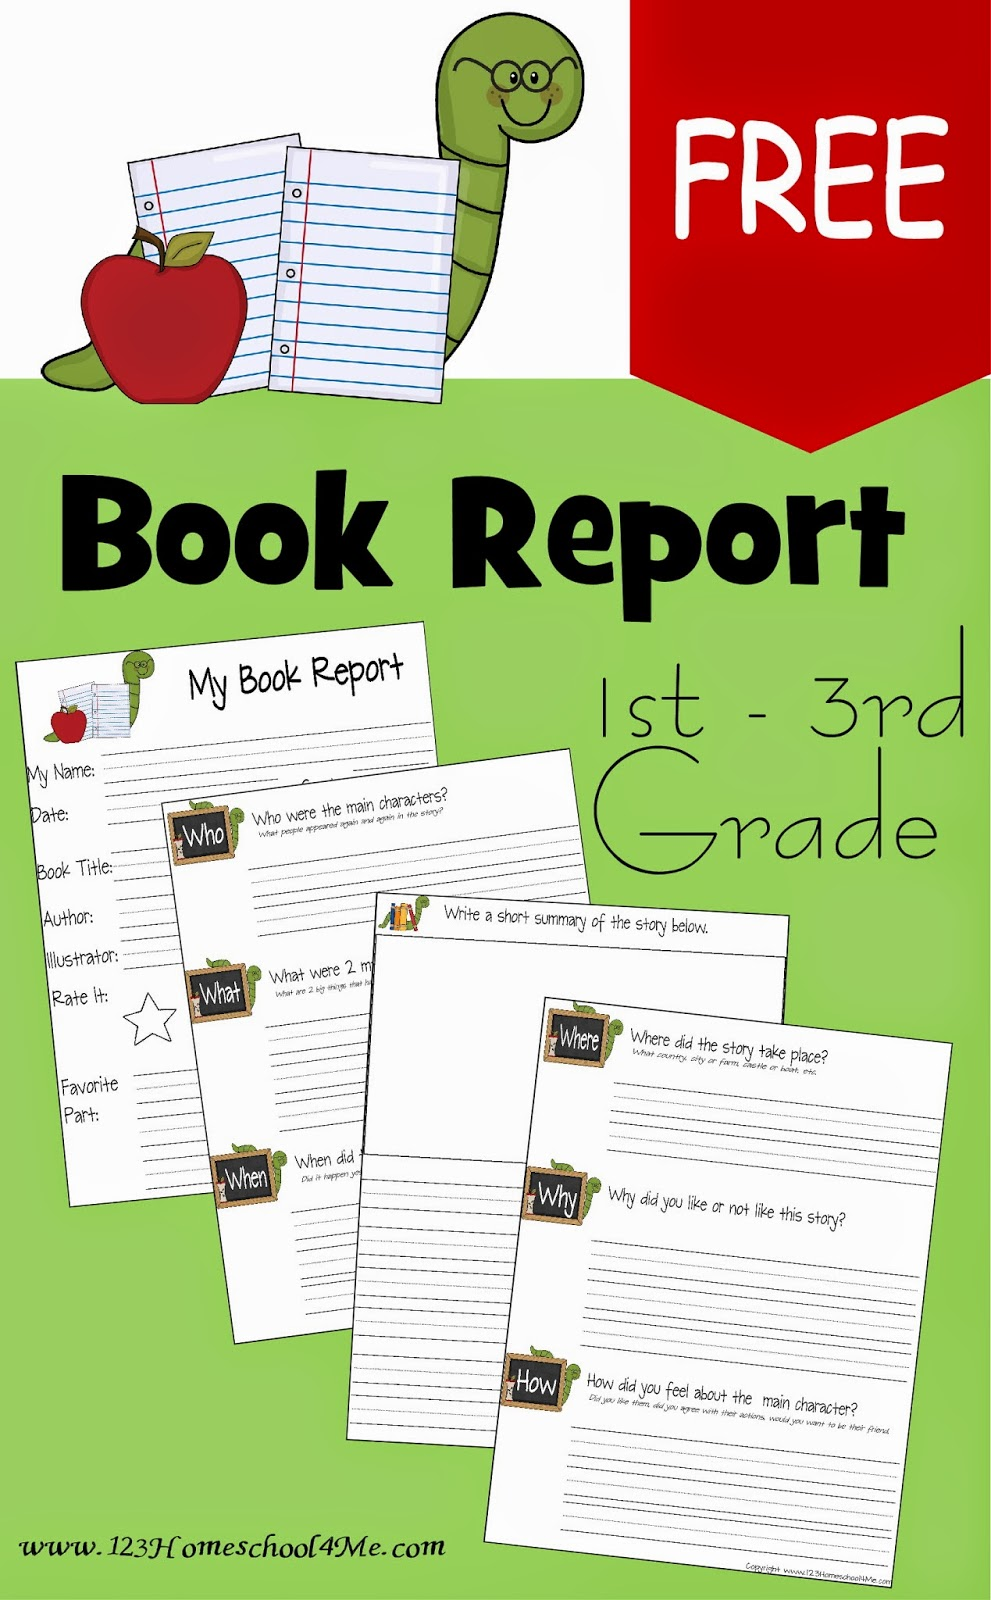 Standard 5th grade book report